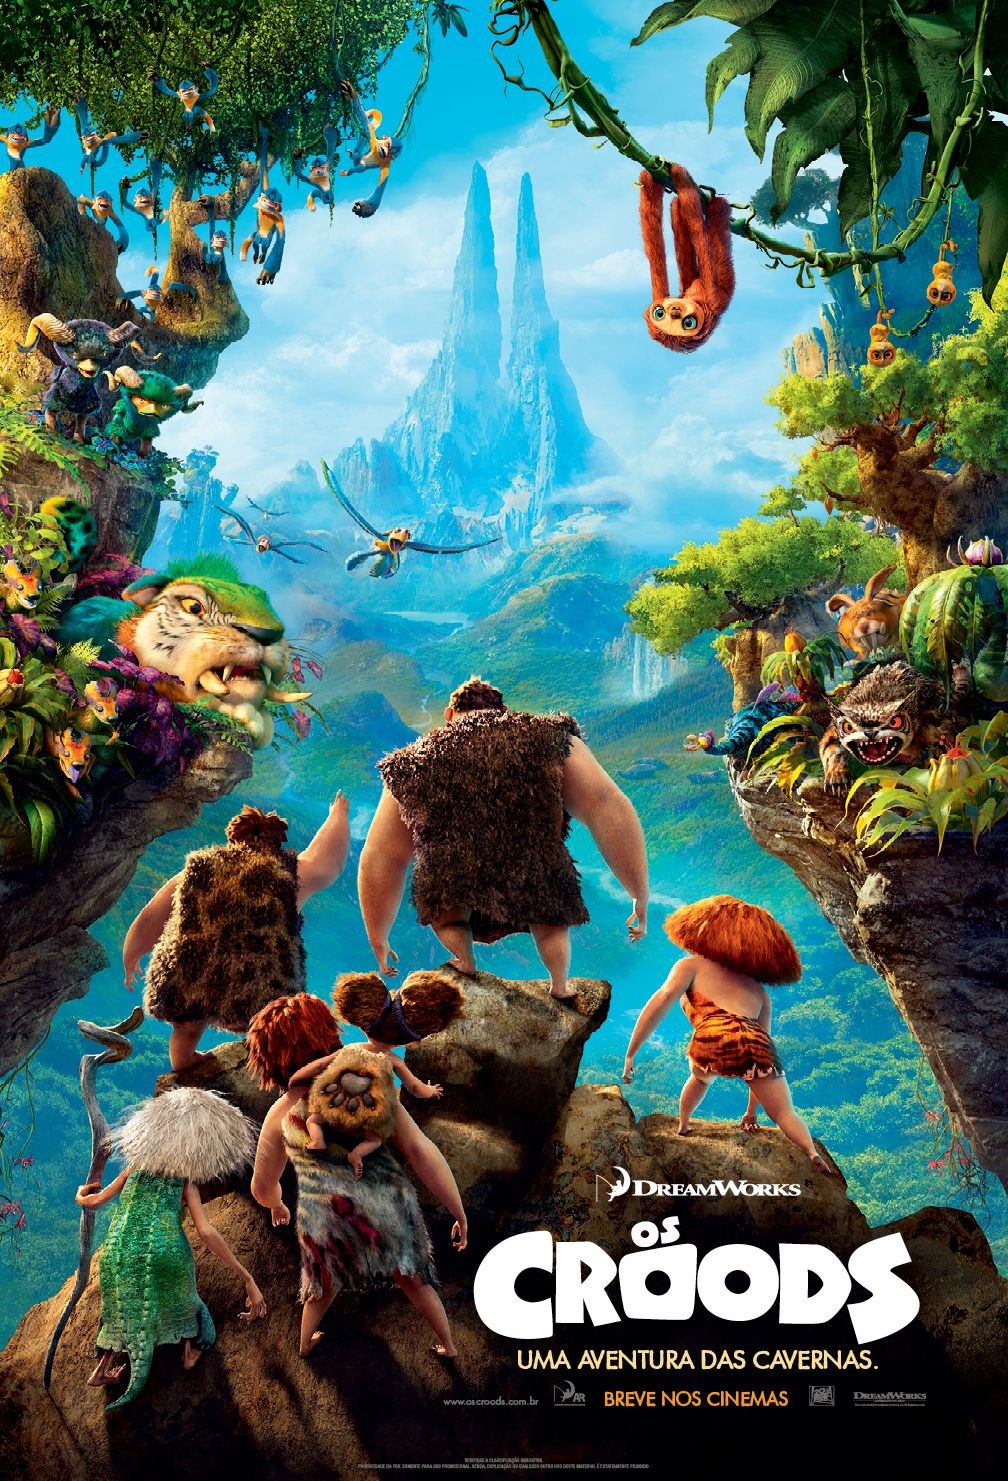 Os Croods The Croods 22 De Marco Site Http Www